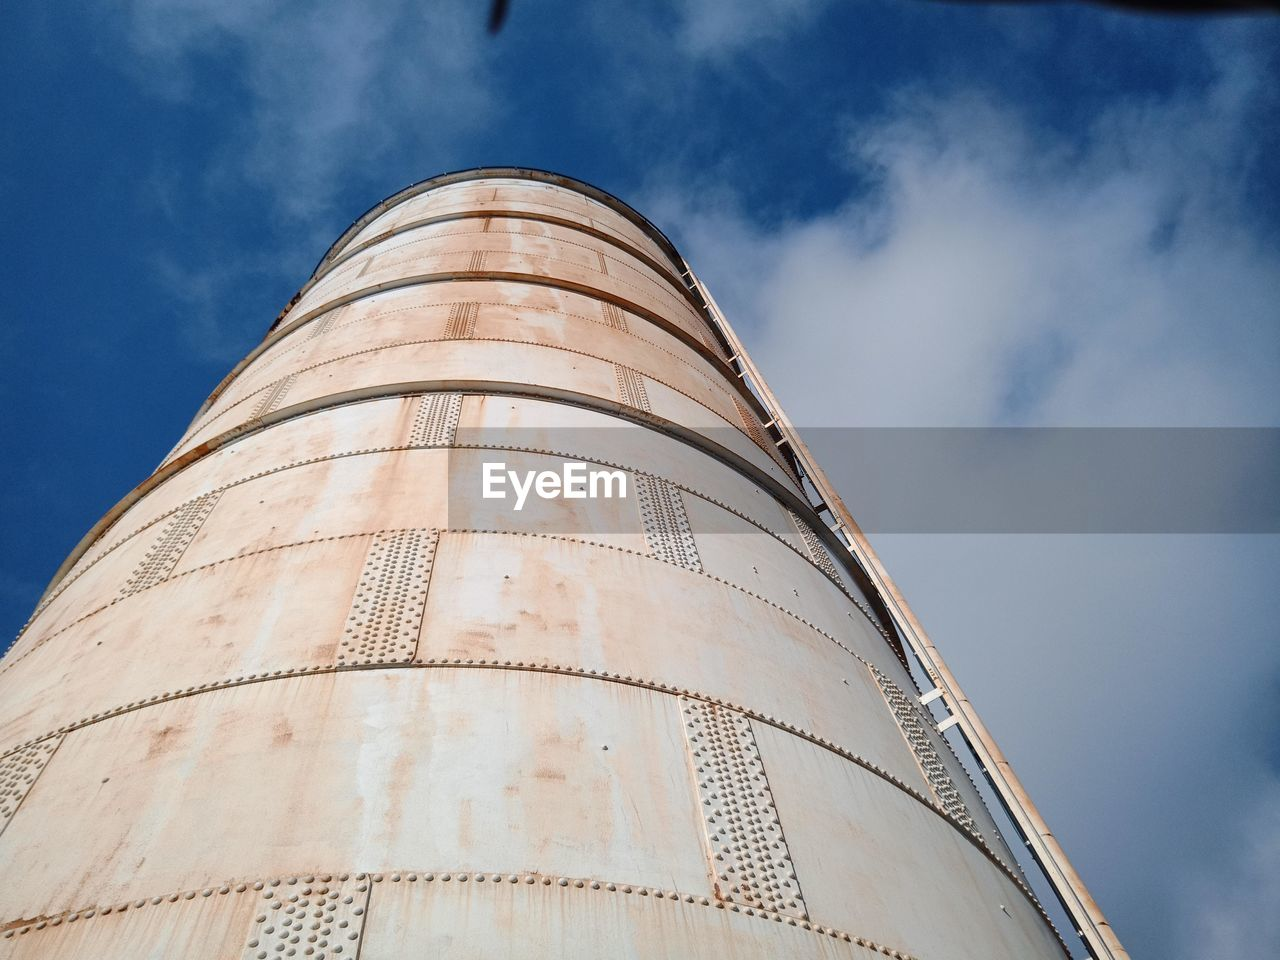 Low angle view of storage tank against cloudy sky